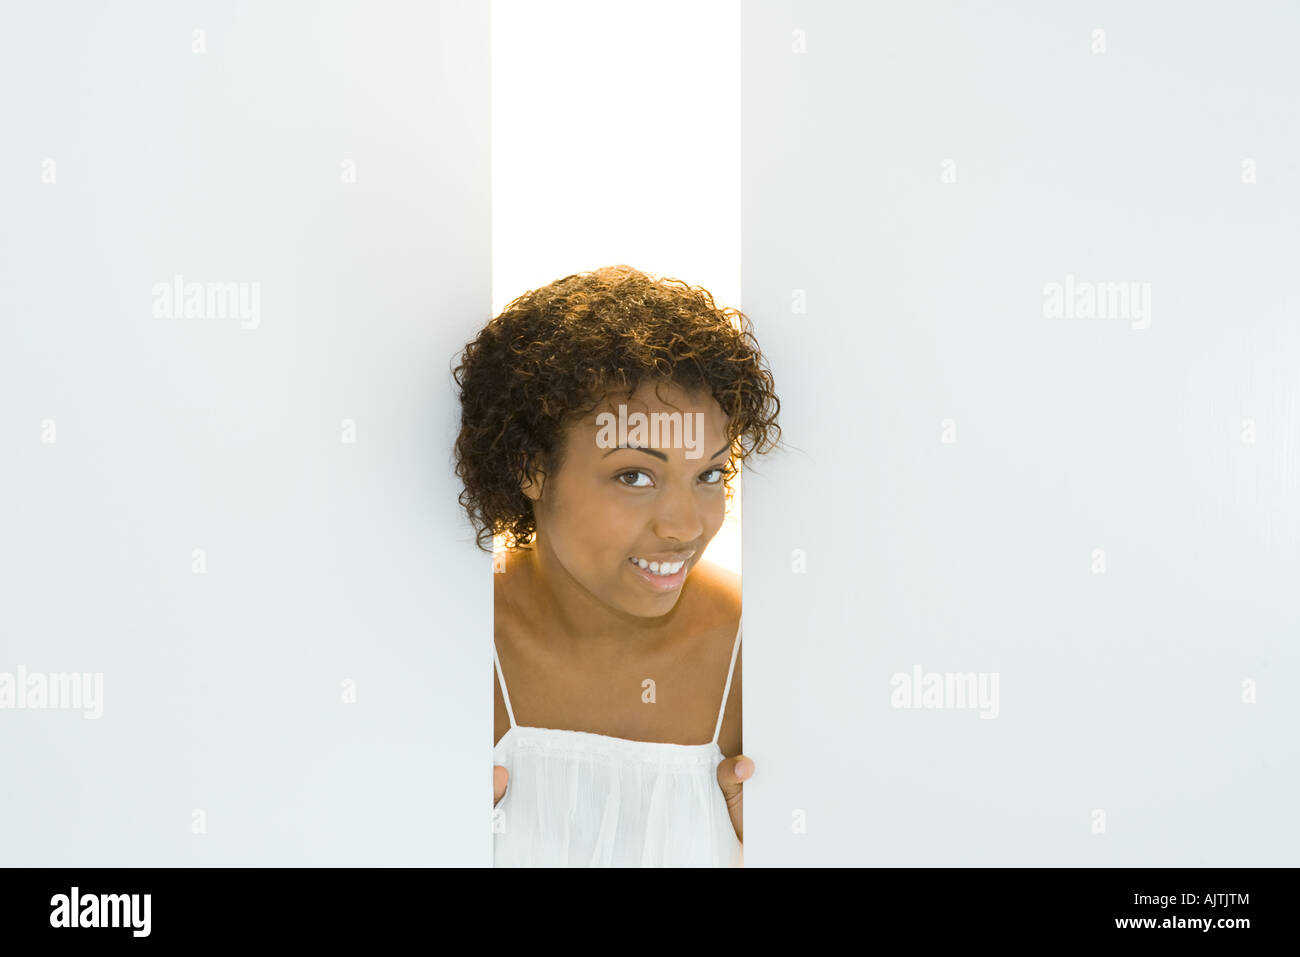 Young woman peeking through opening in walls, smiling at camera, portrait - Stock Image